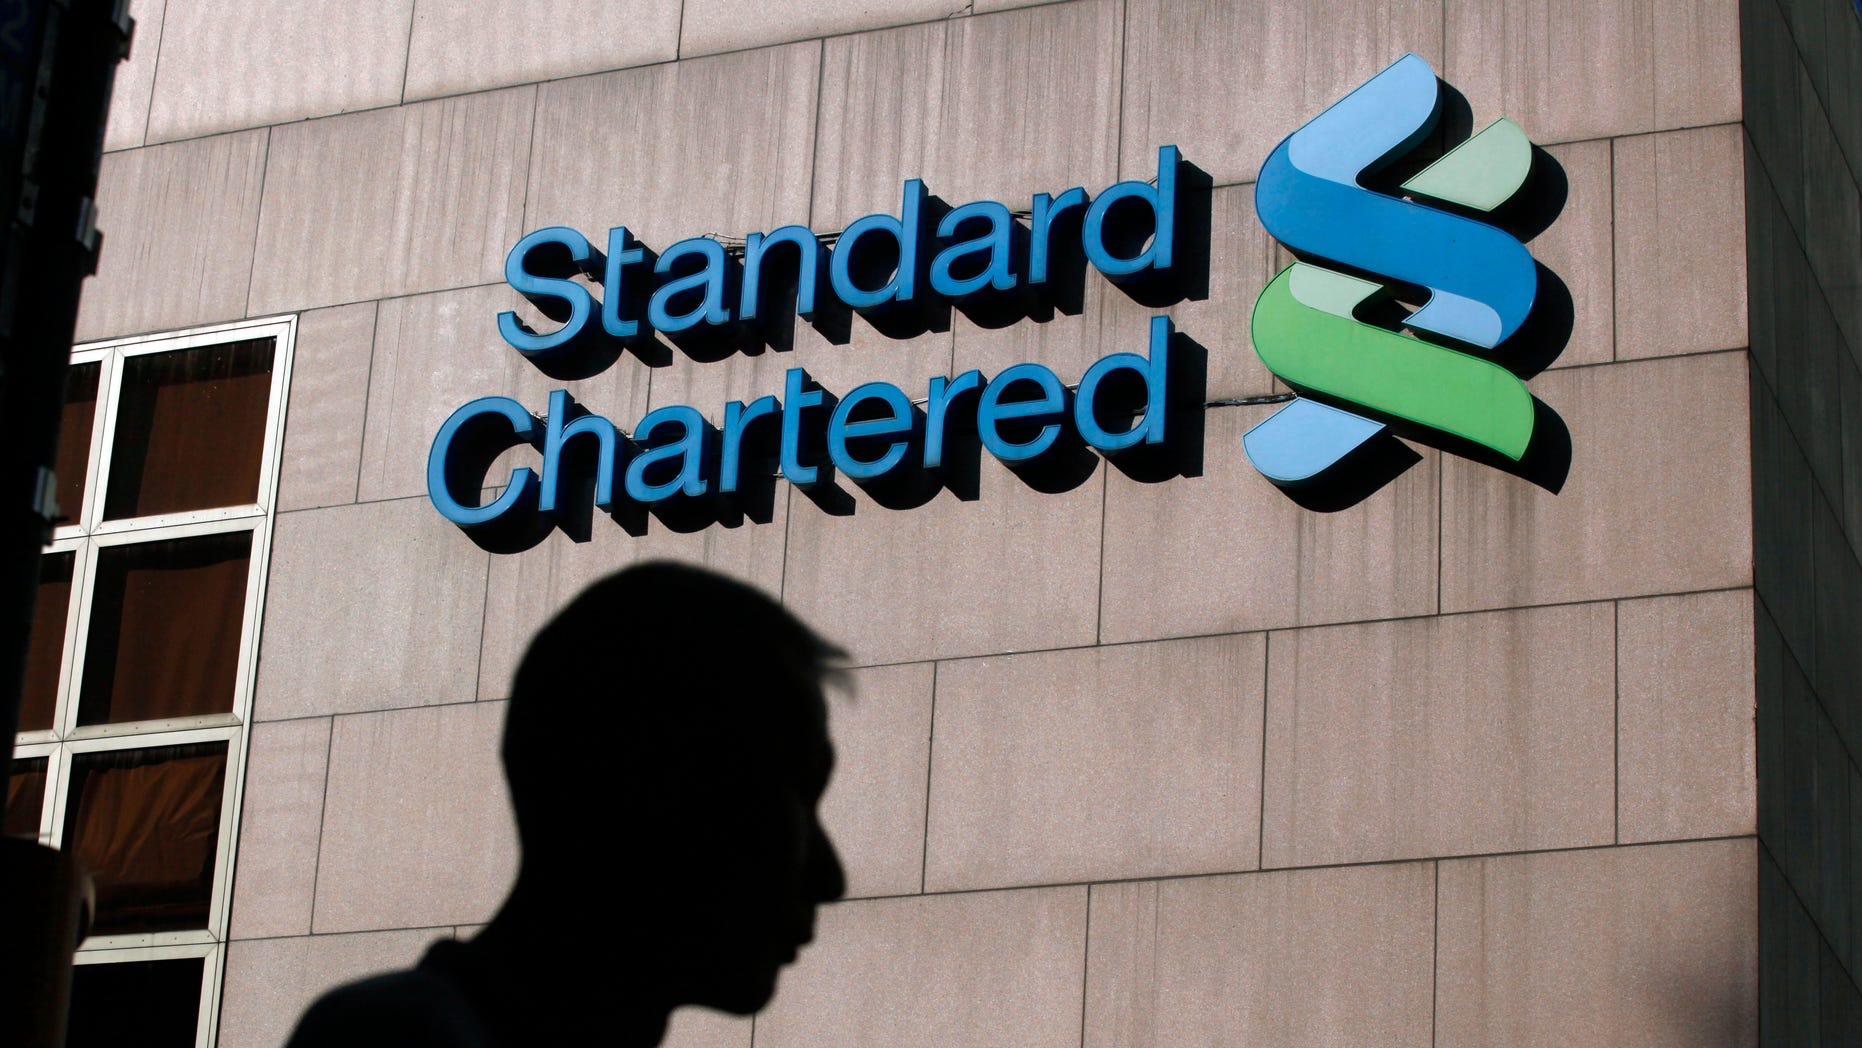 The London-based Standard Chartered Bank is accused of scheming with the Iranian government to launder $250 billion from 2001 to 2007.